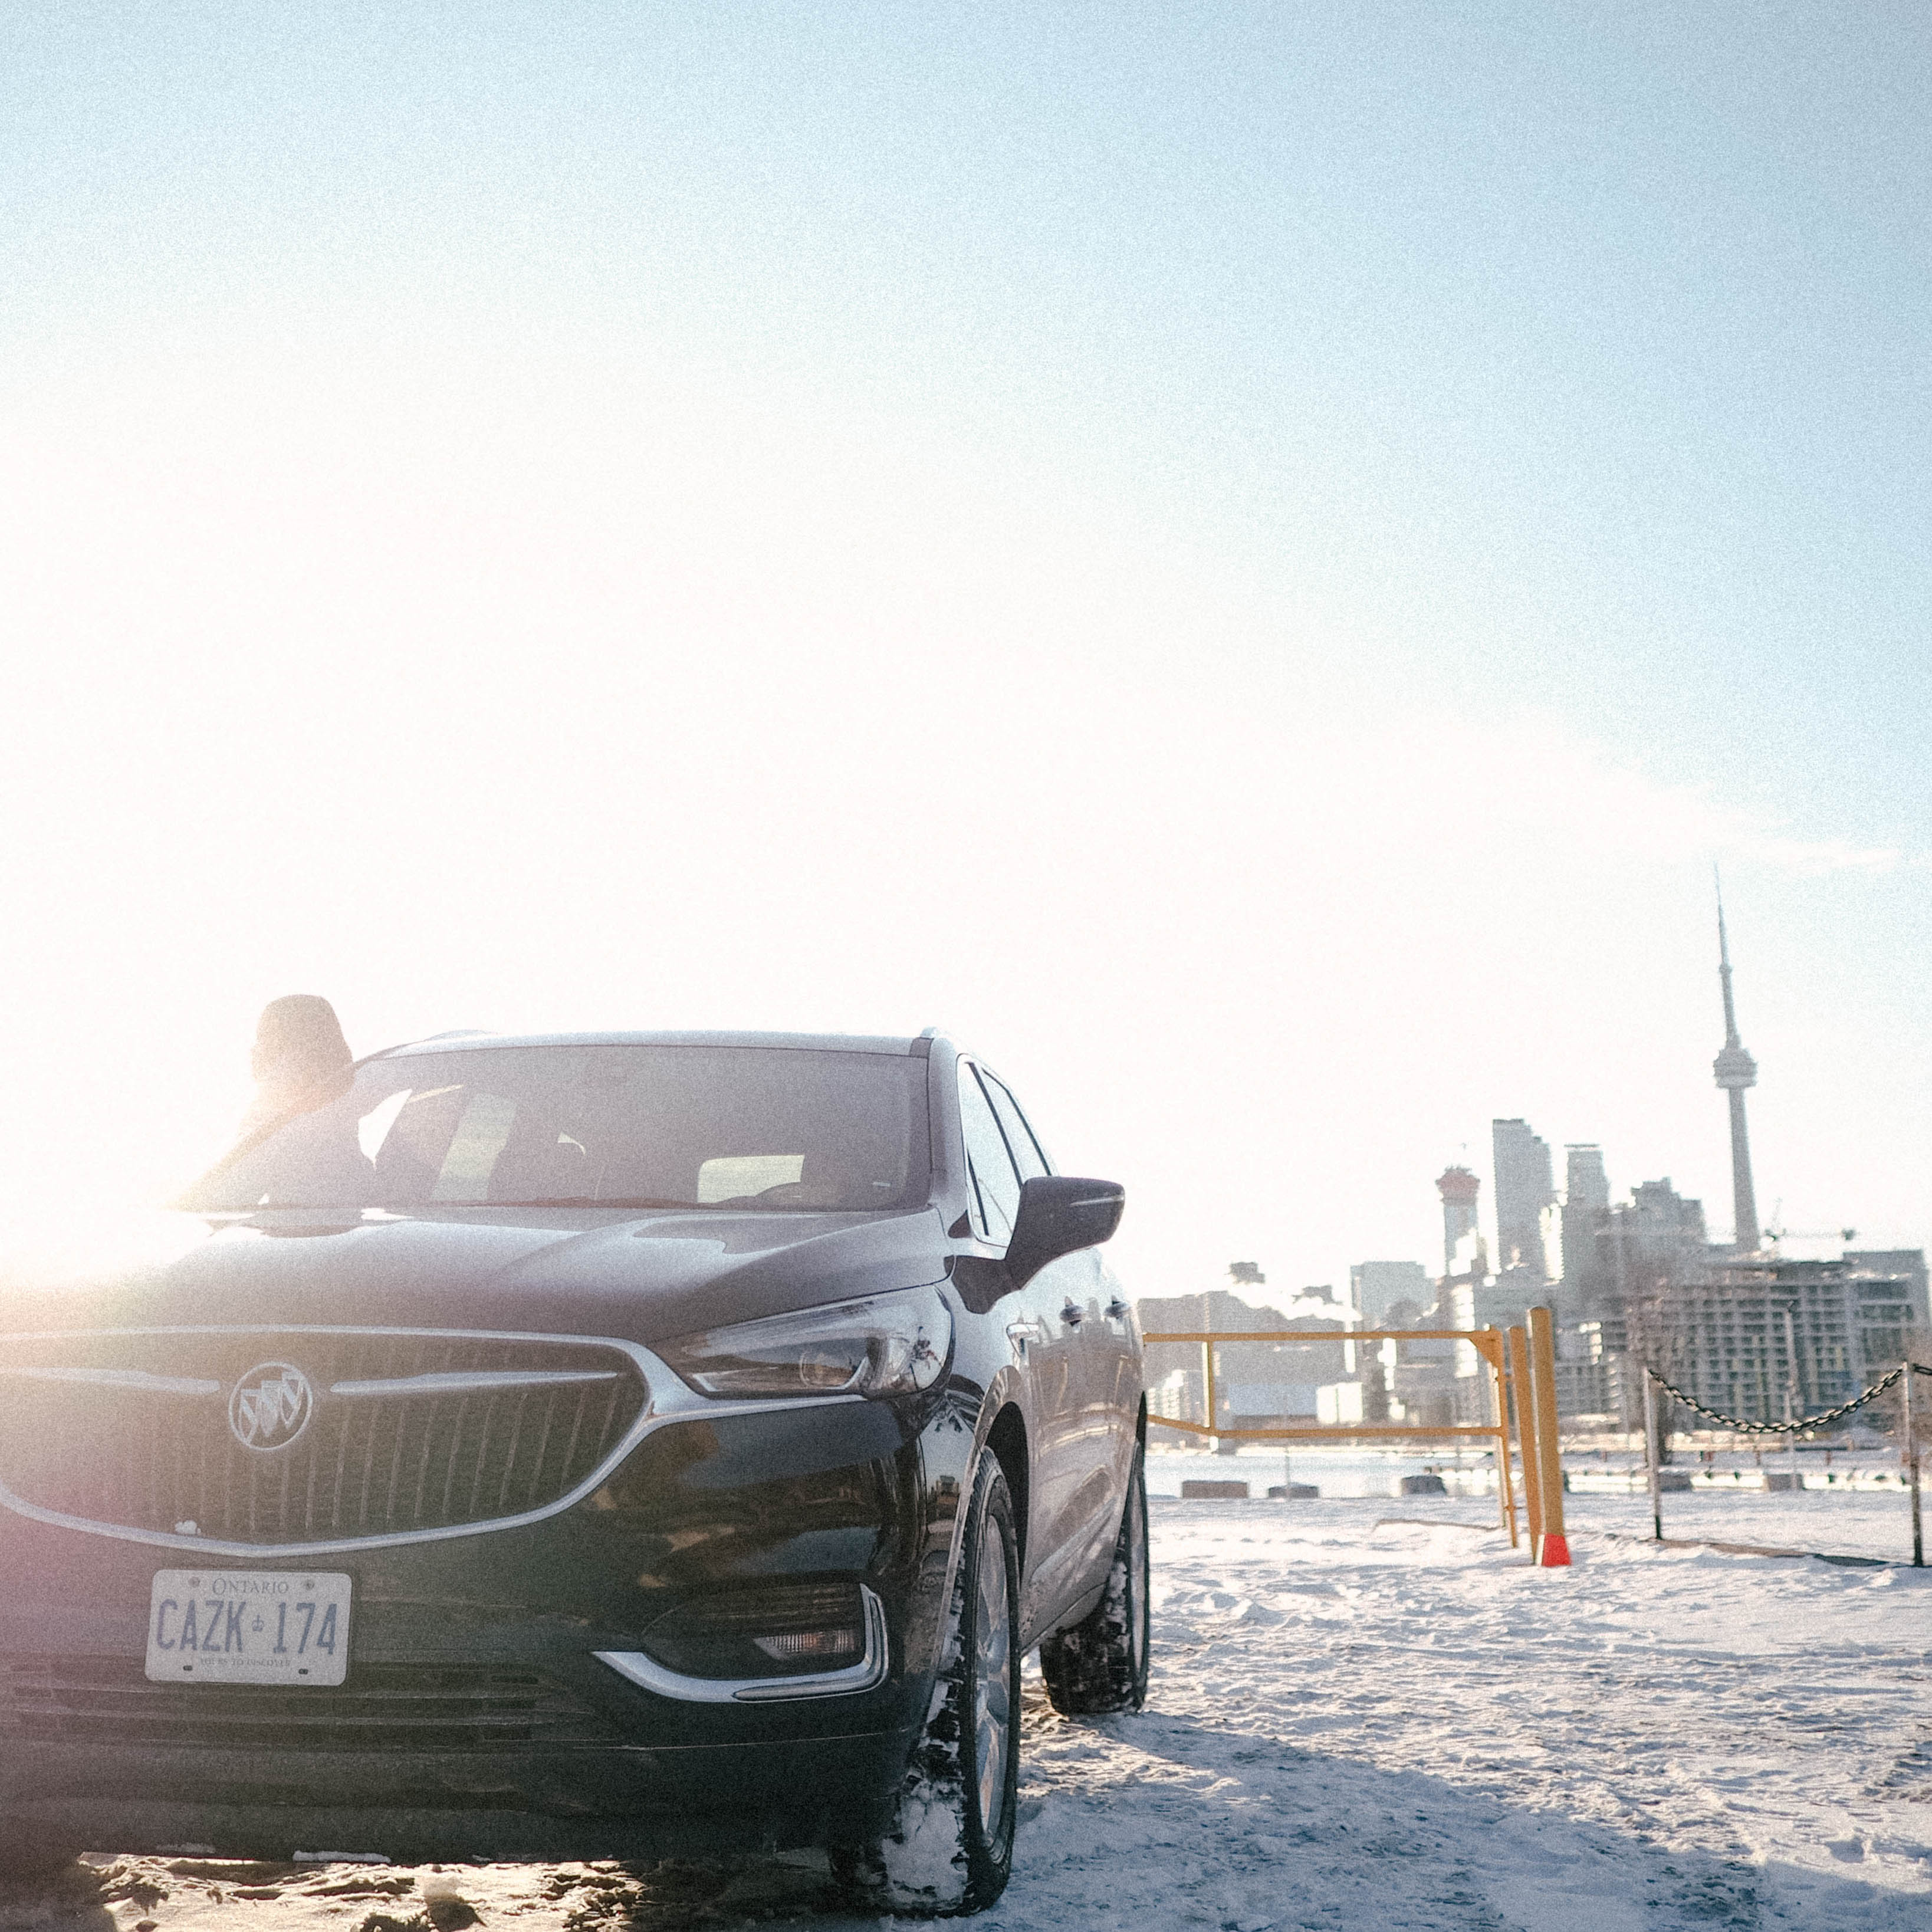 Exploring the city with this beautiful Buick Enclave.